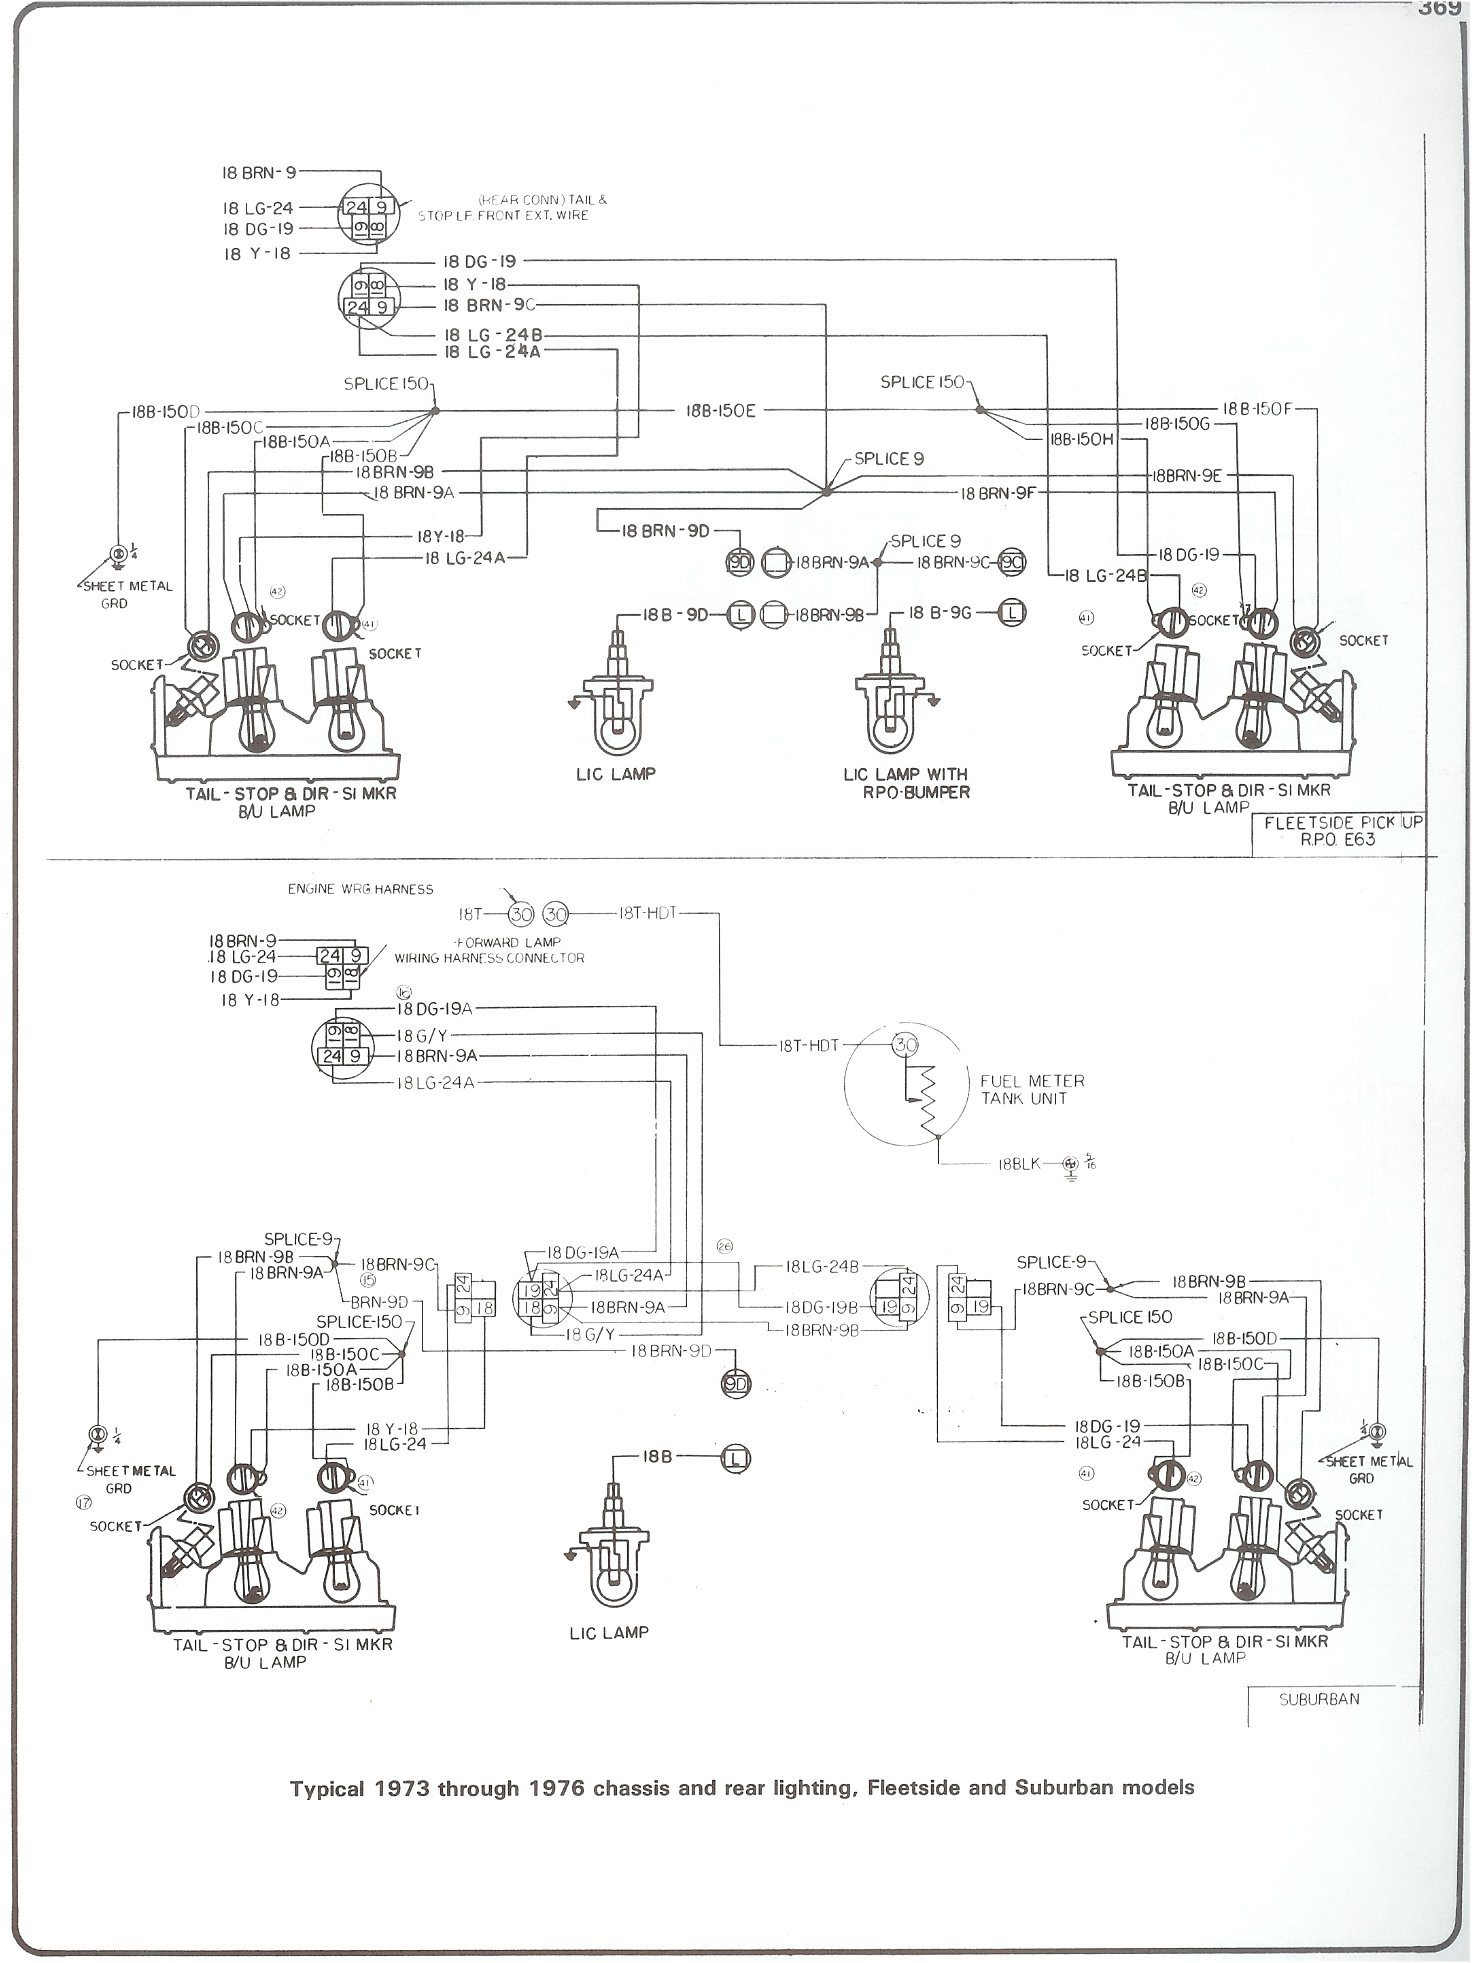 complete 73 87 wiring diagrams 87 chevy s10 radio wiring diagram 73 76  chassis rear lighting